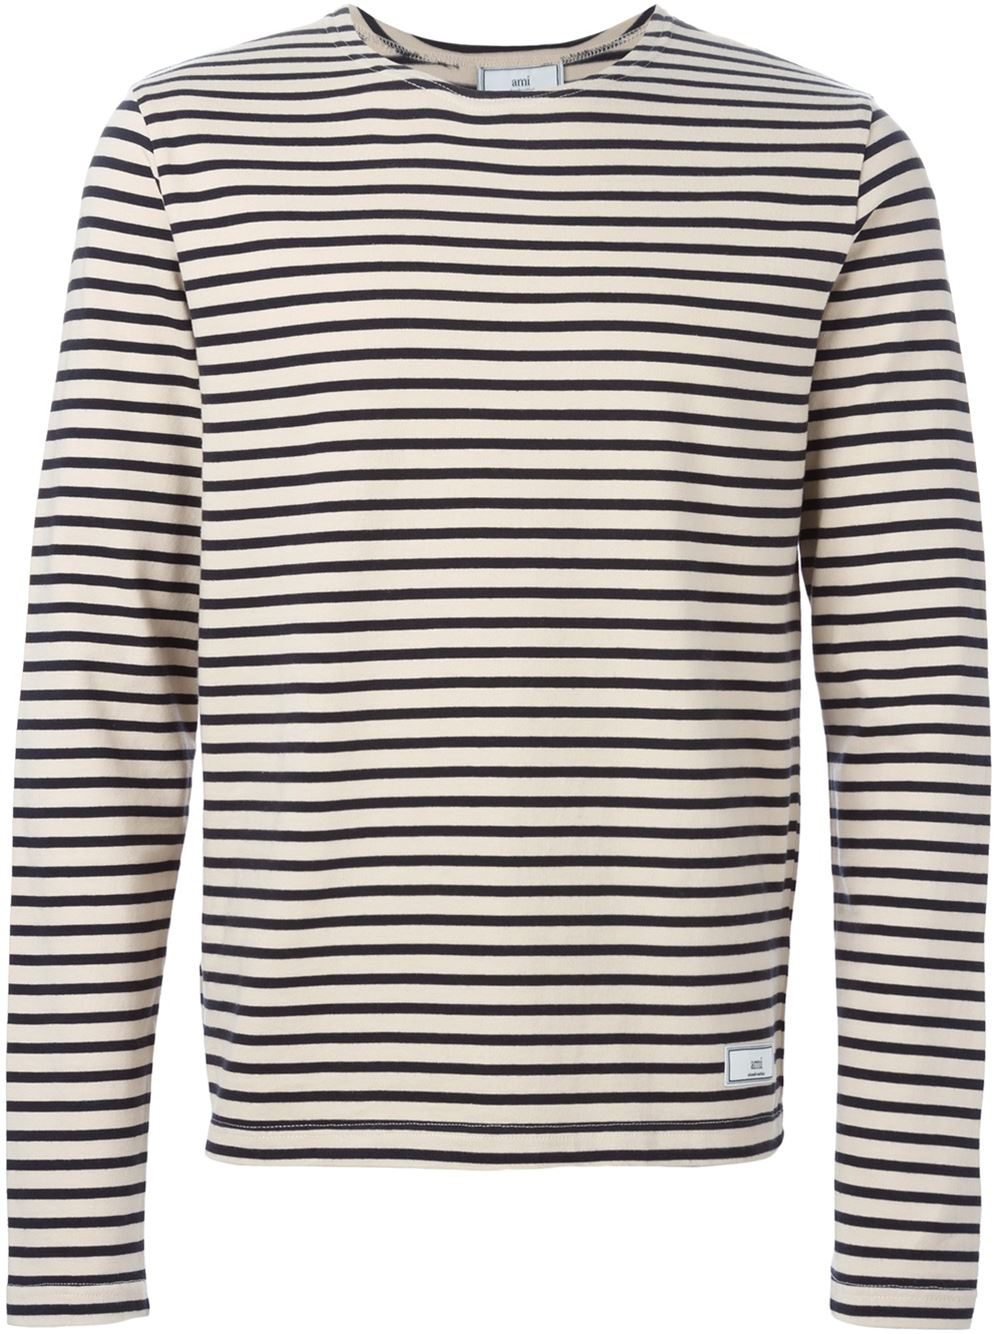 Ami Striped Long Sleeve T Shirt In Beige For Men Nude